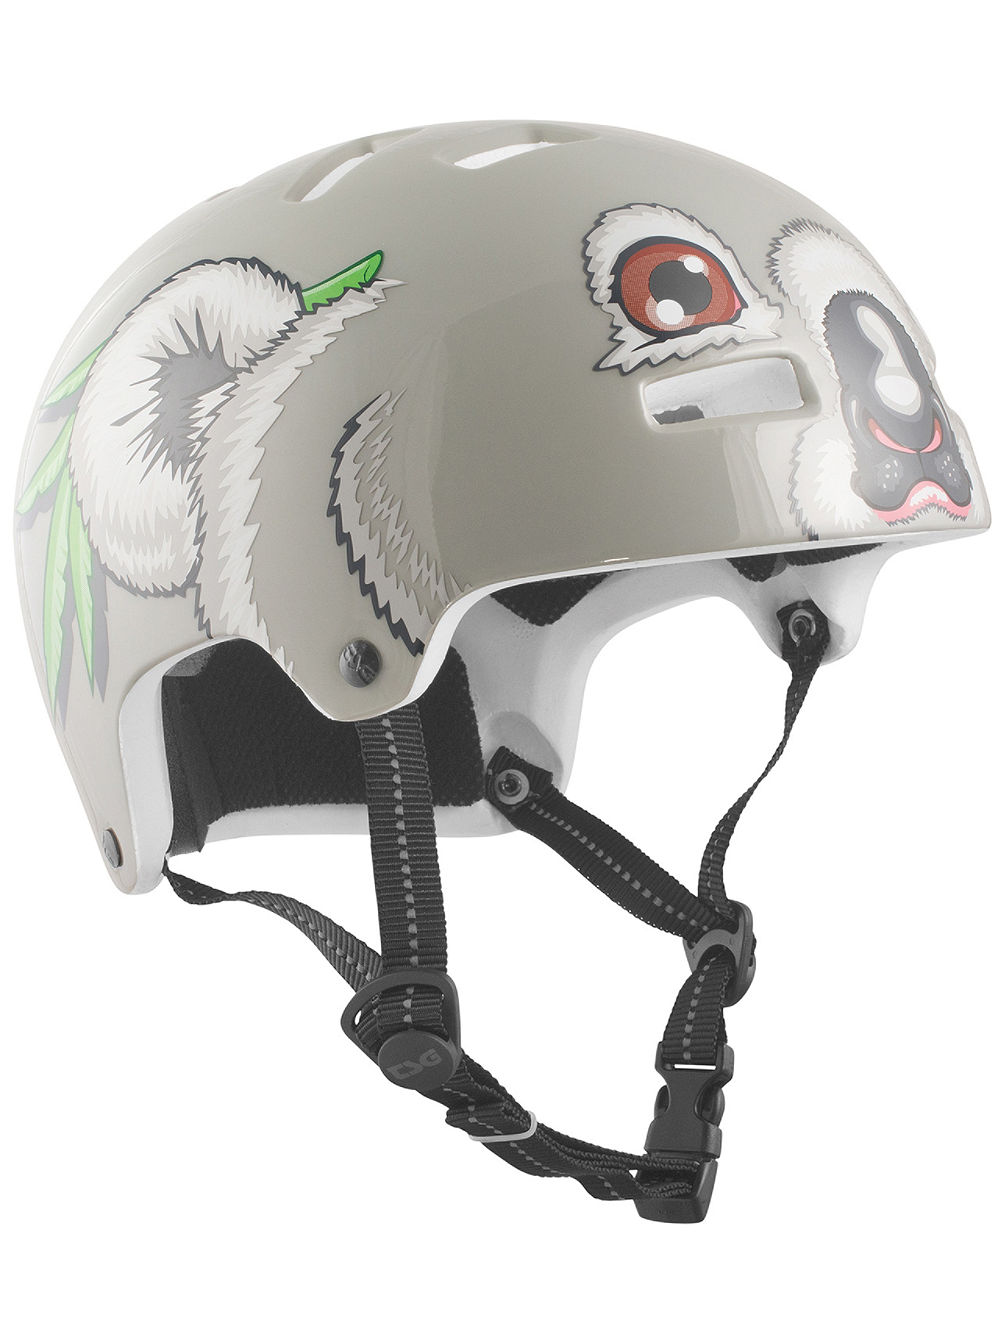 Nipper Maxi Graphic Design Helmet Youth